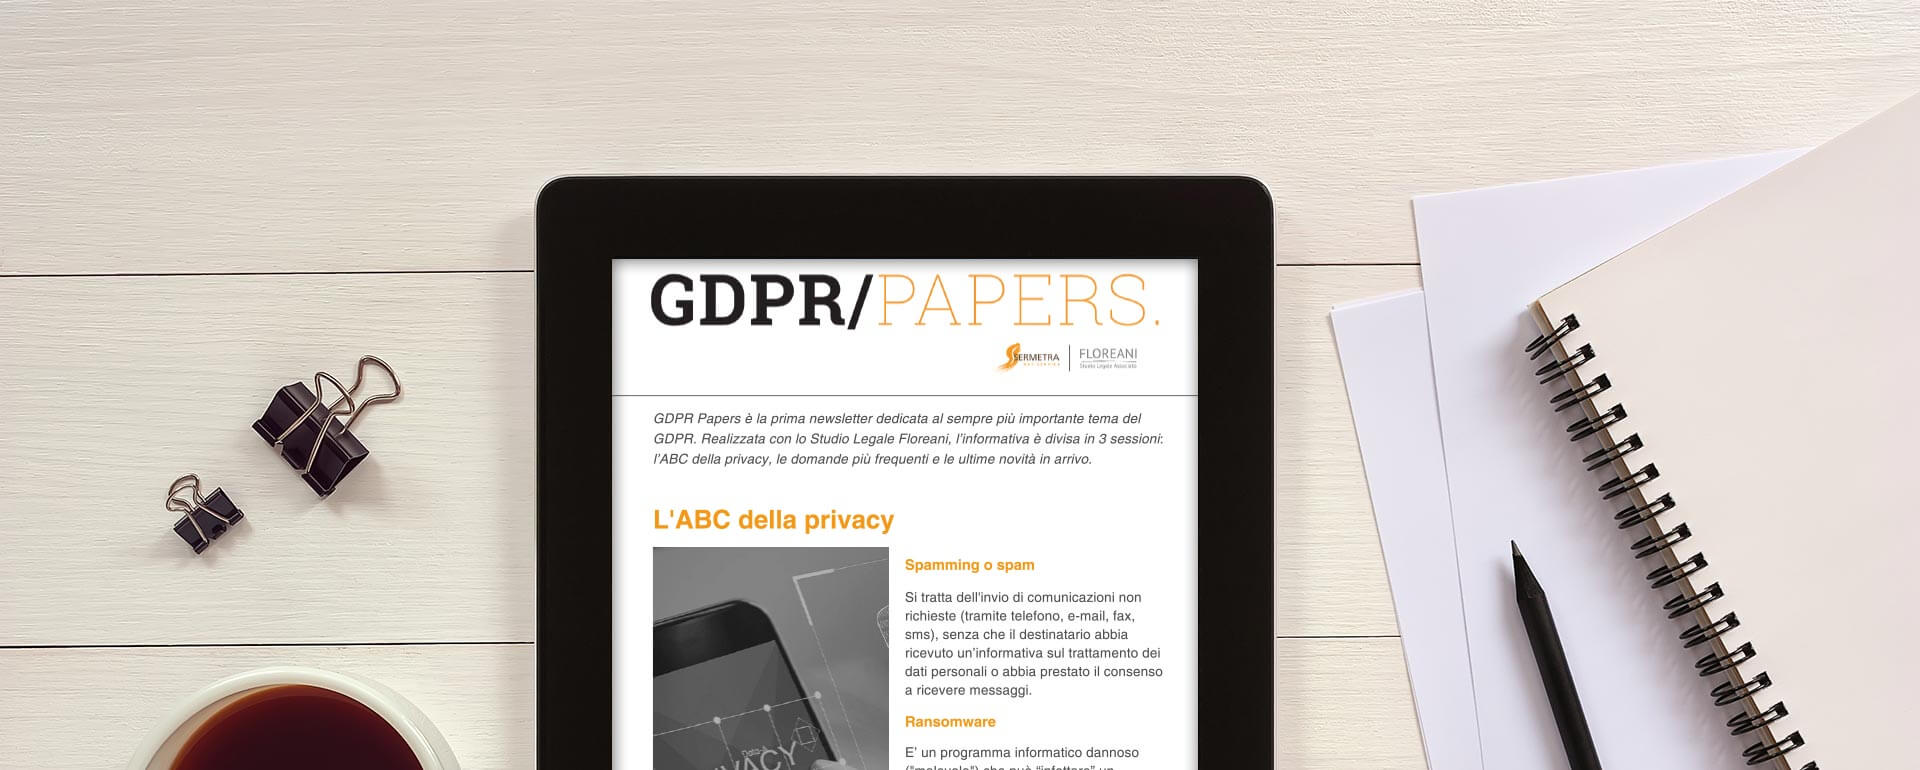 GDPR Papers vol.2